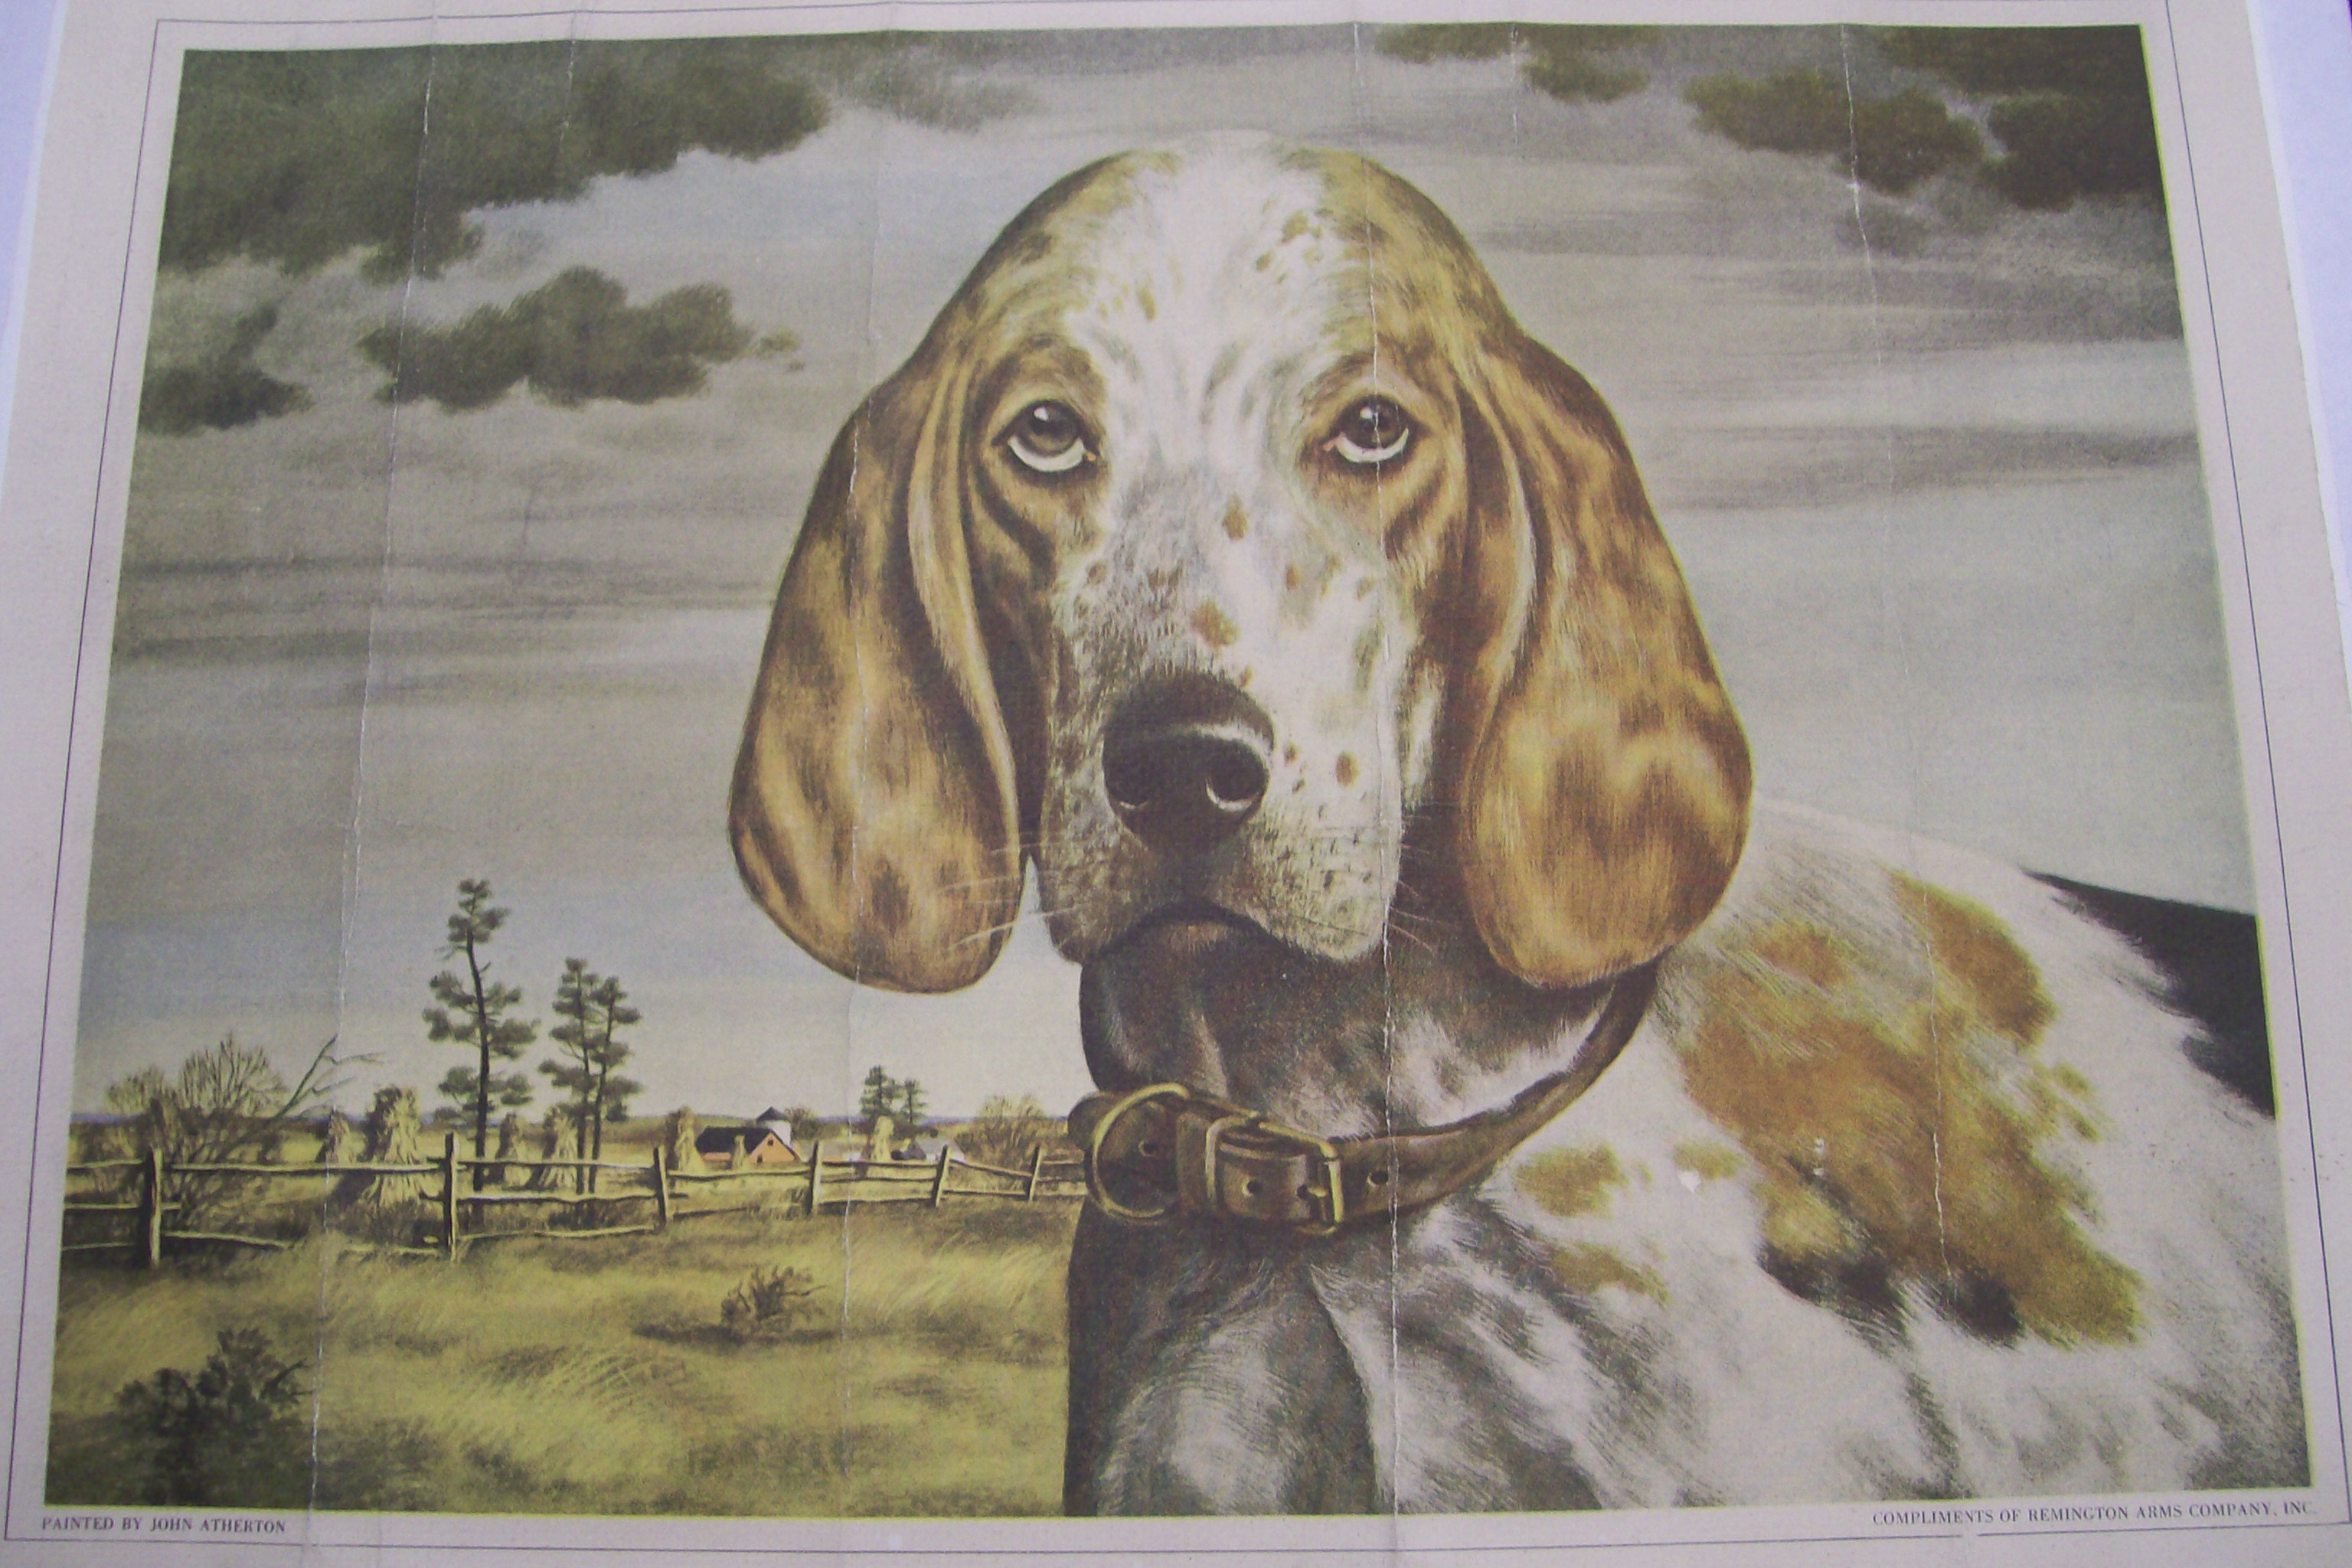 Remington Arms Co. Poster of Beagle painted by John Atherton